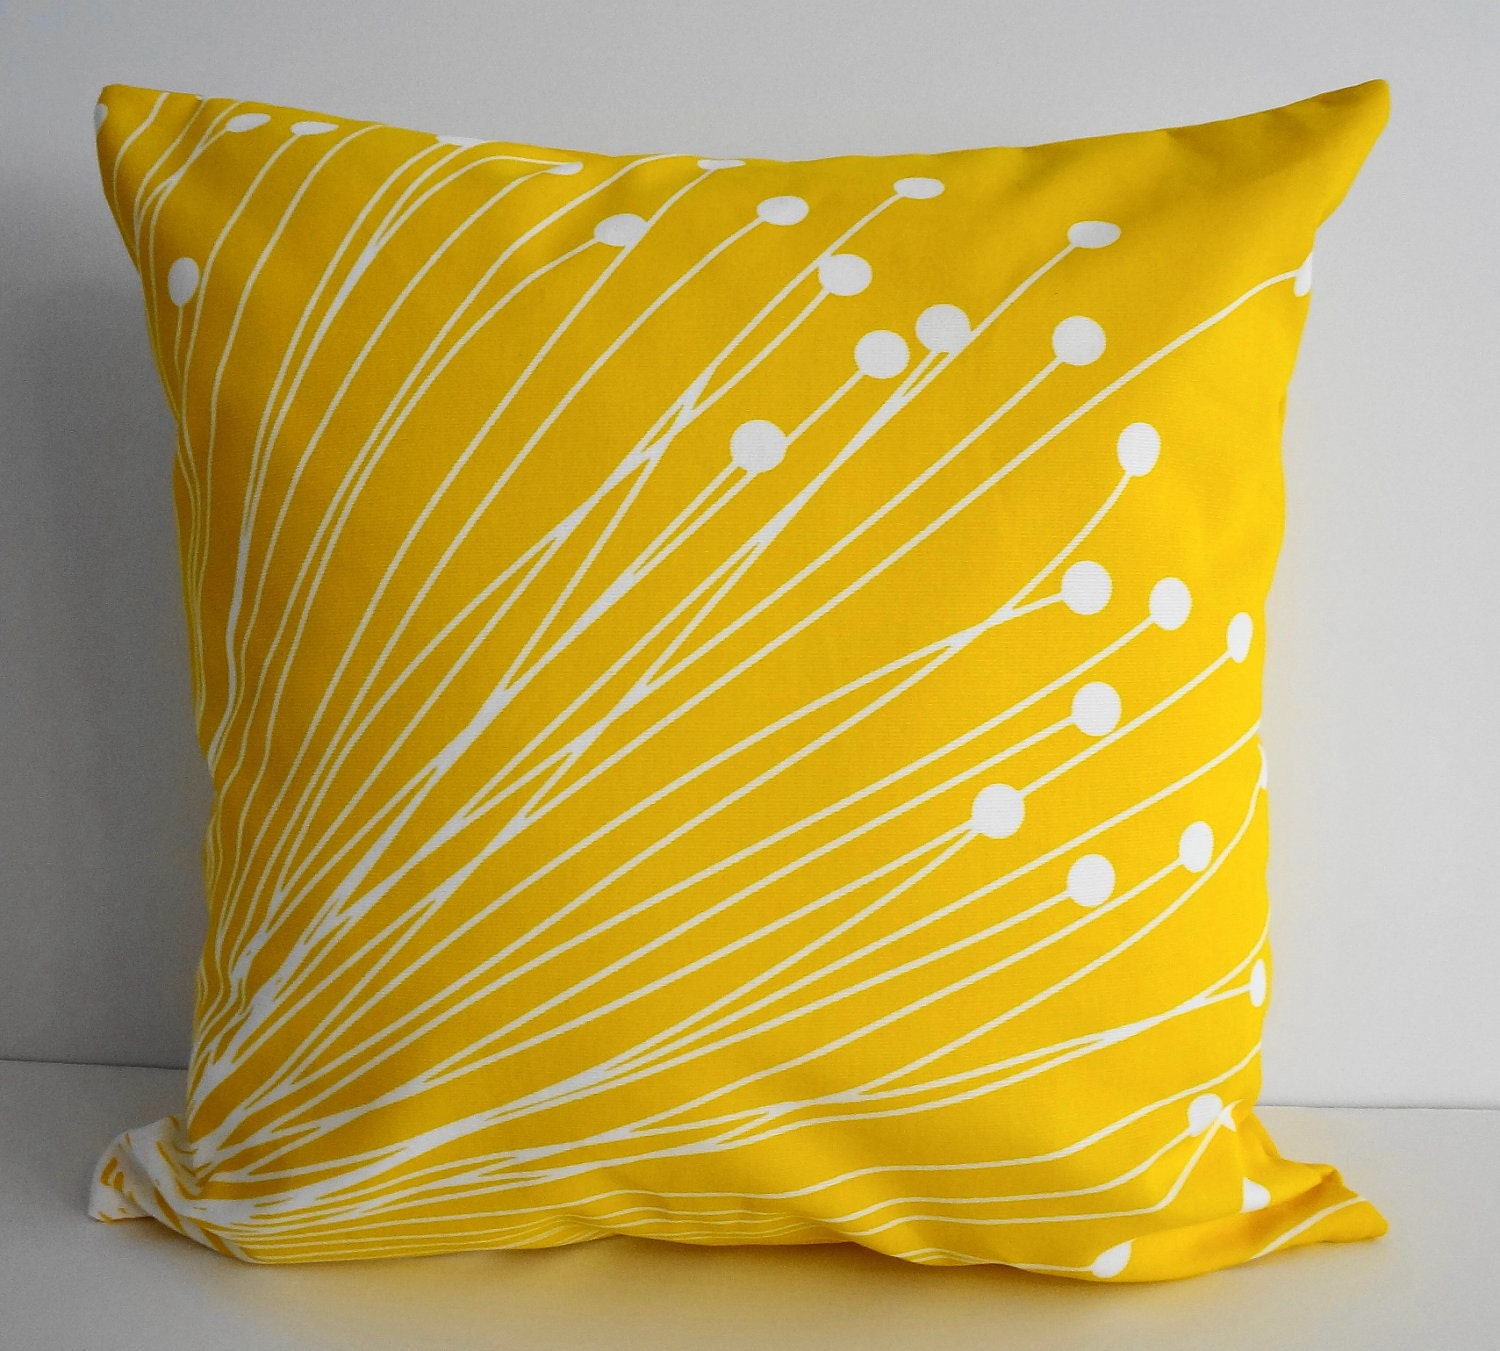 Yellow Starburst Pillow Covers Decorative Throw by pillows4fun